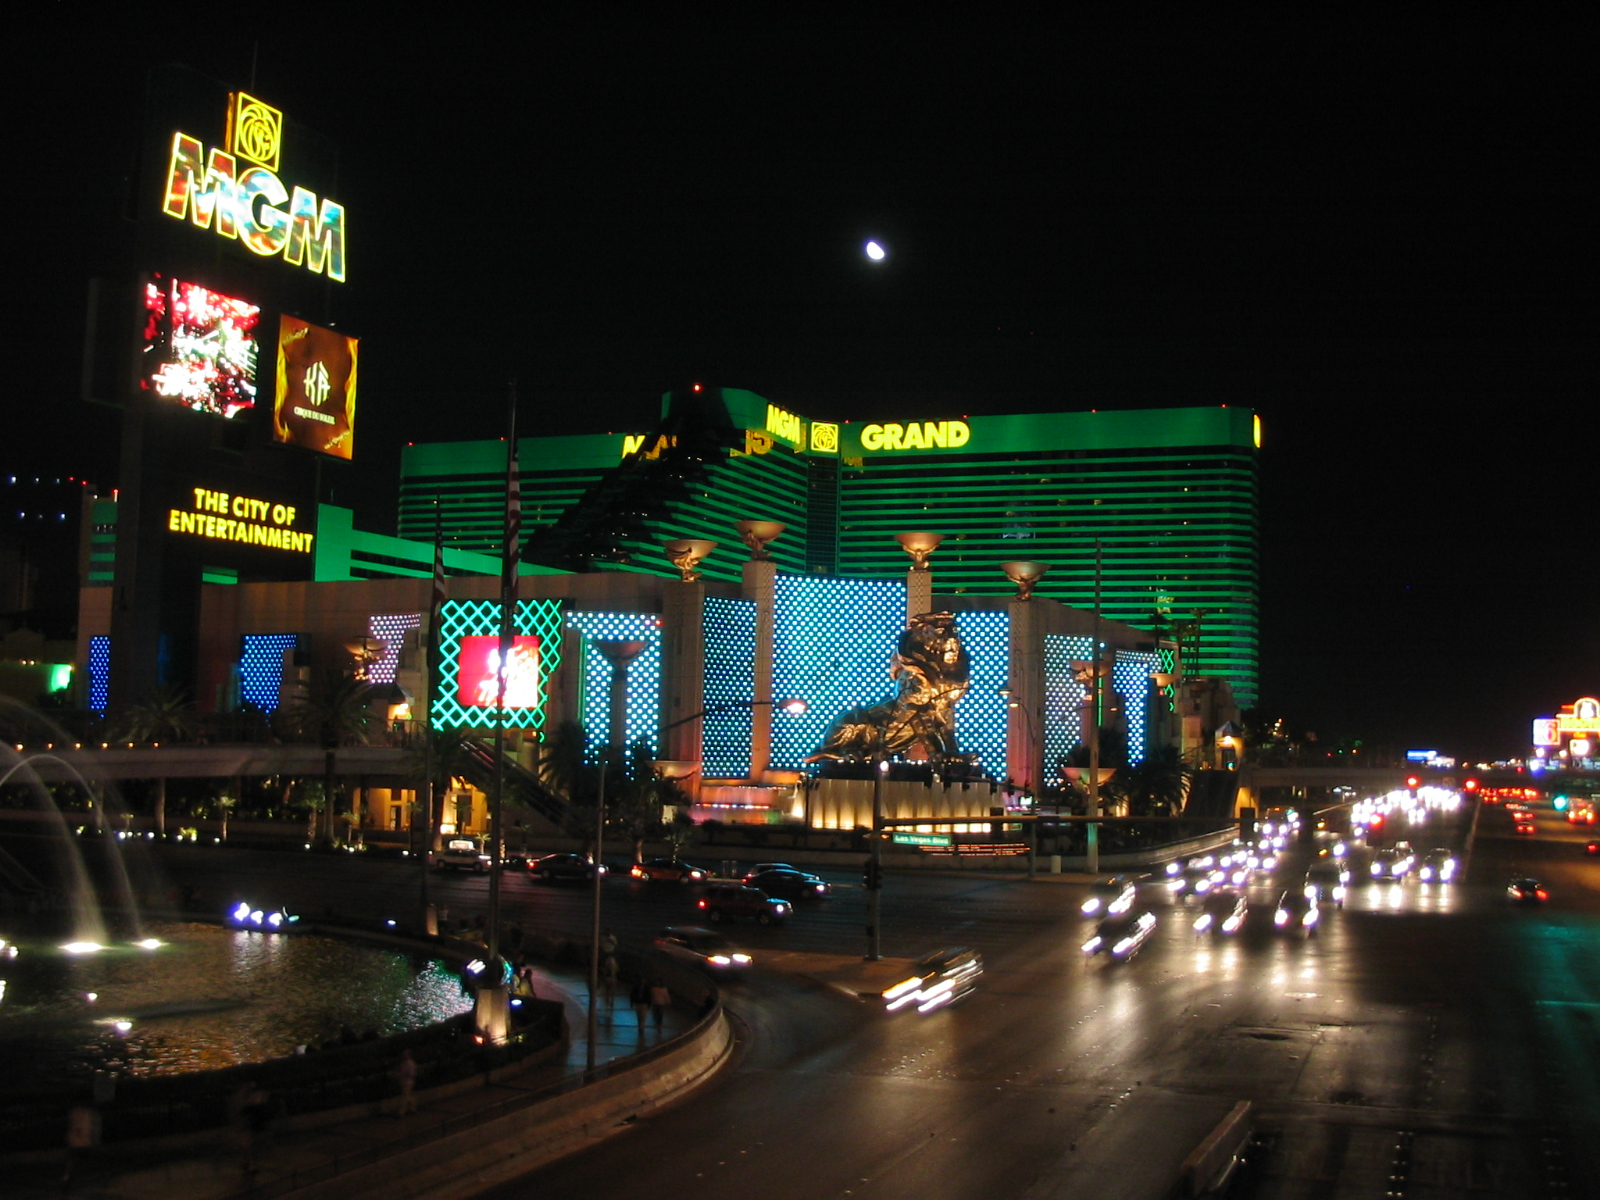 MGM The City Of Entertainment outside